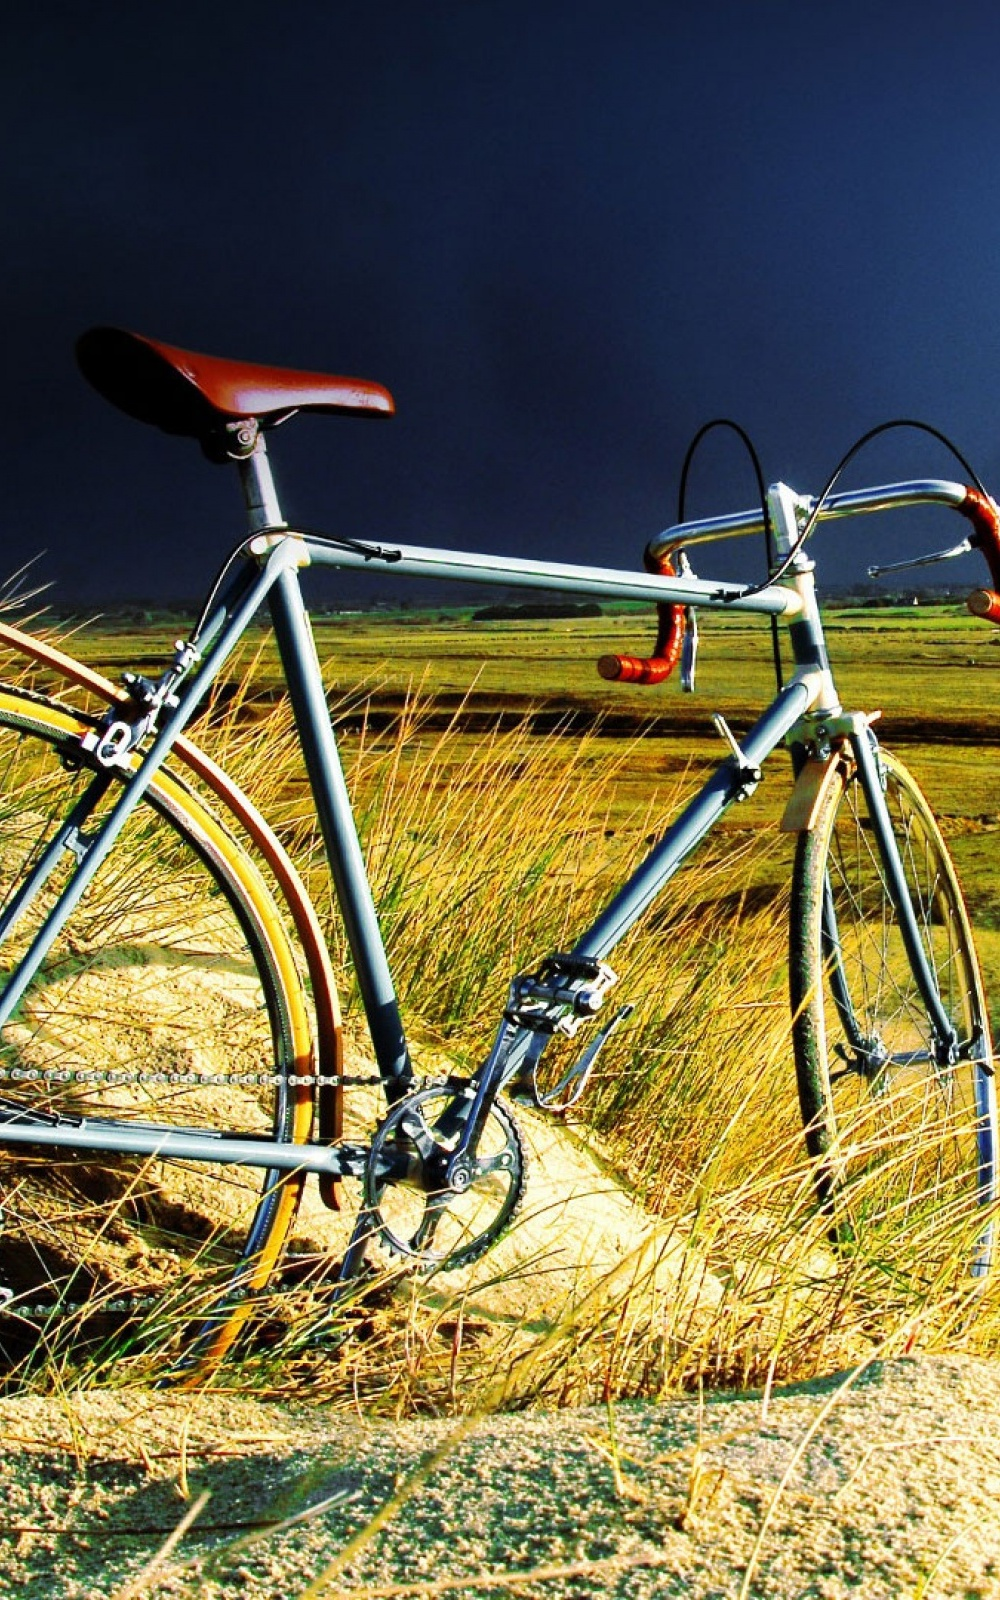 Simple Wallpaper Mobile Vintage - 1000-Vintage-Bicycle-in-the-Storm-l  Collection_573977.jpg